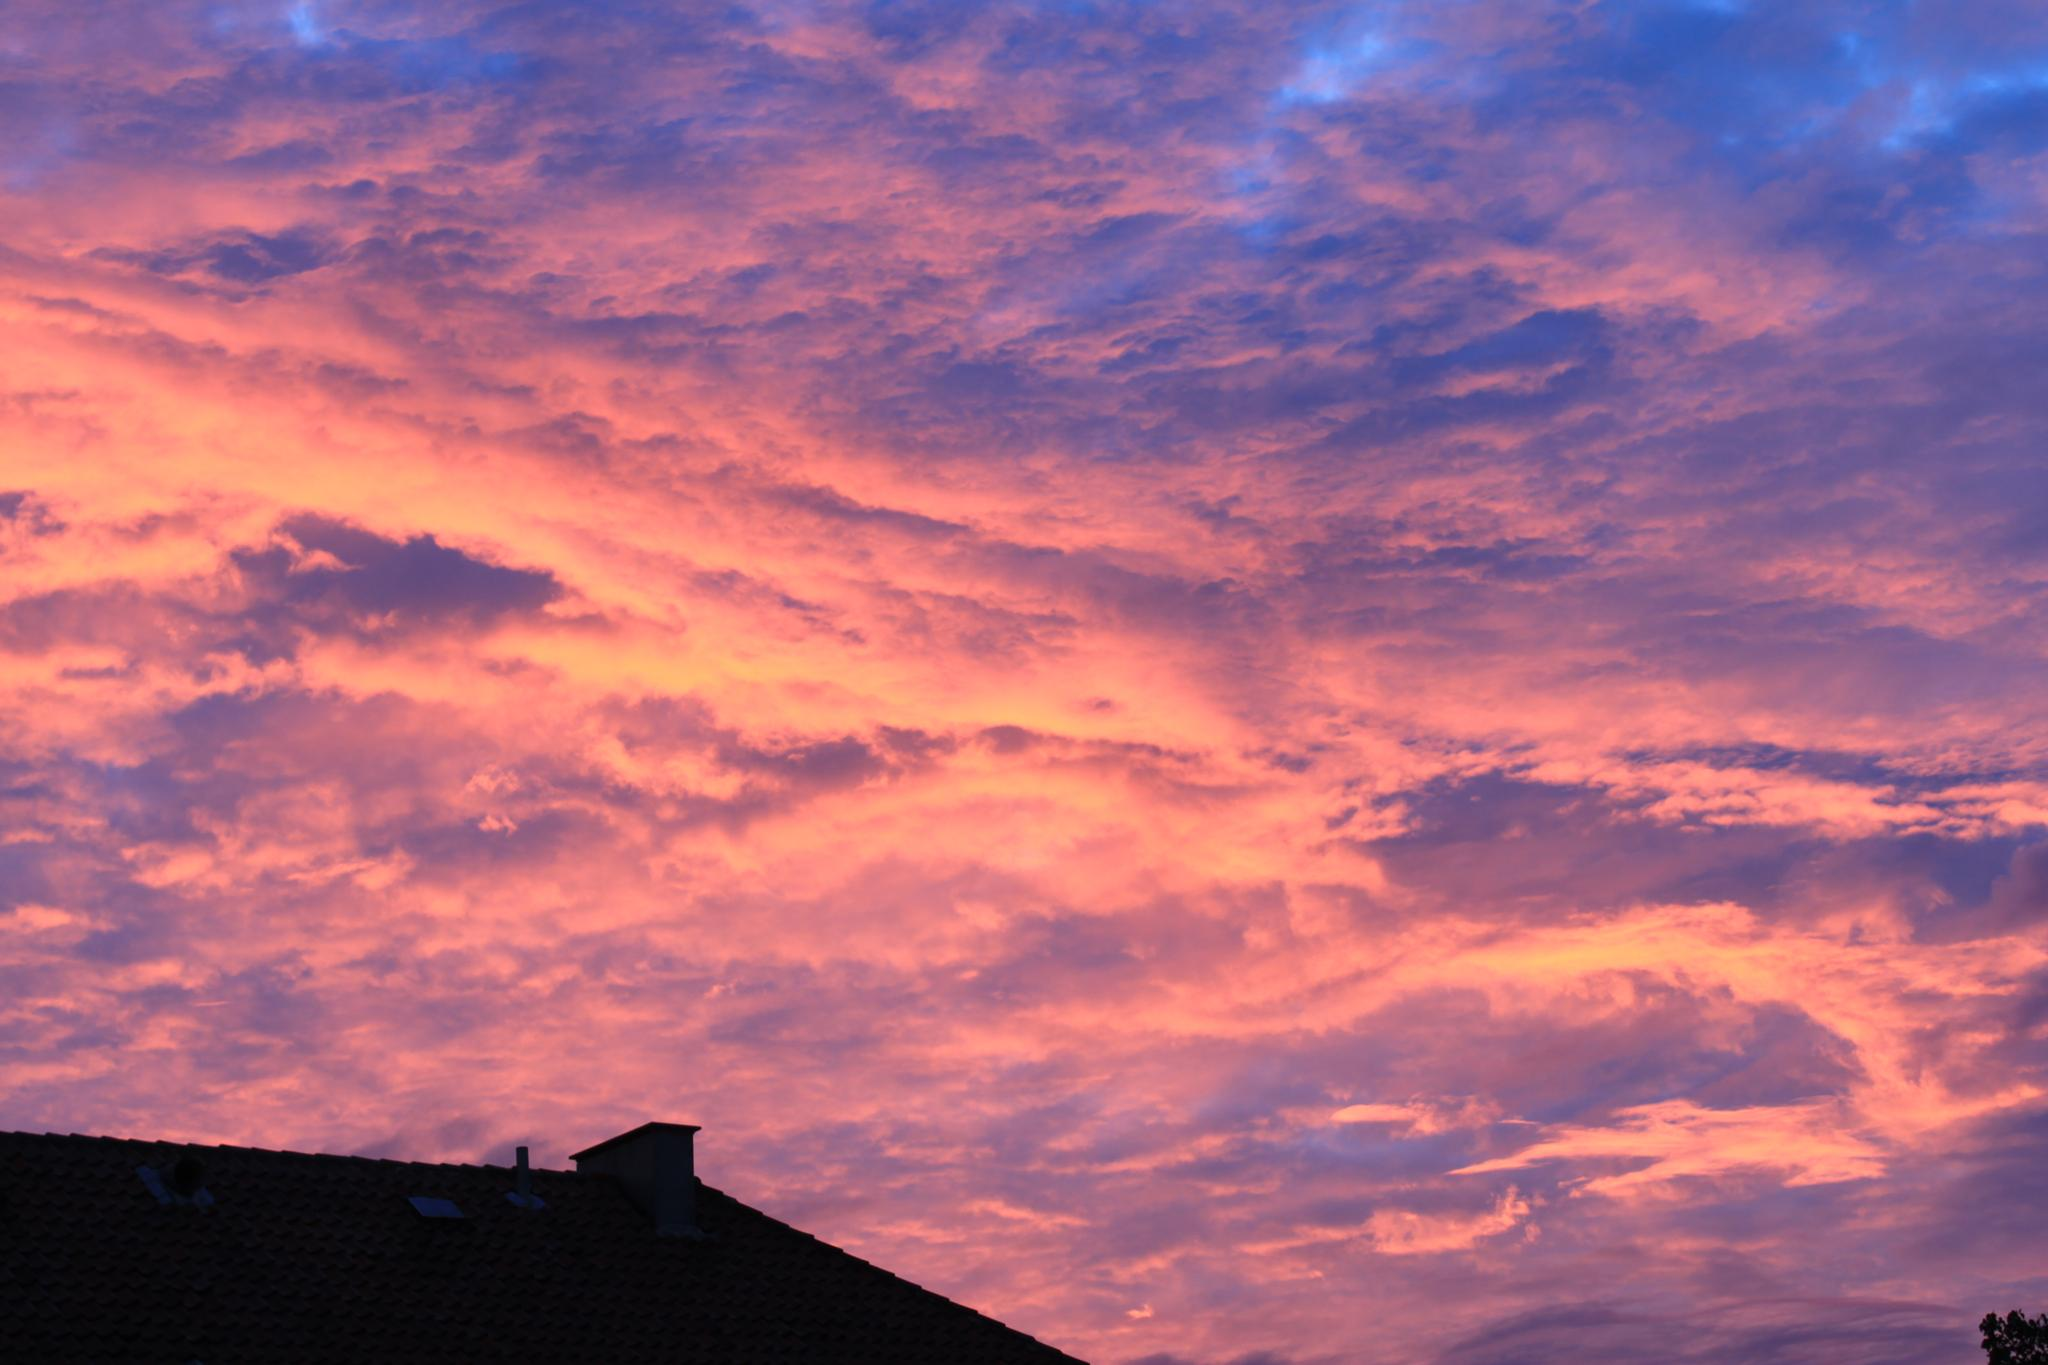 Sky on fire above Copenhagen by Stig Norre Rasmussen